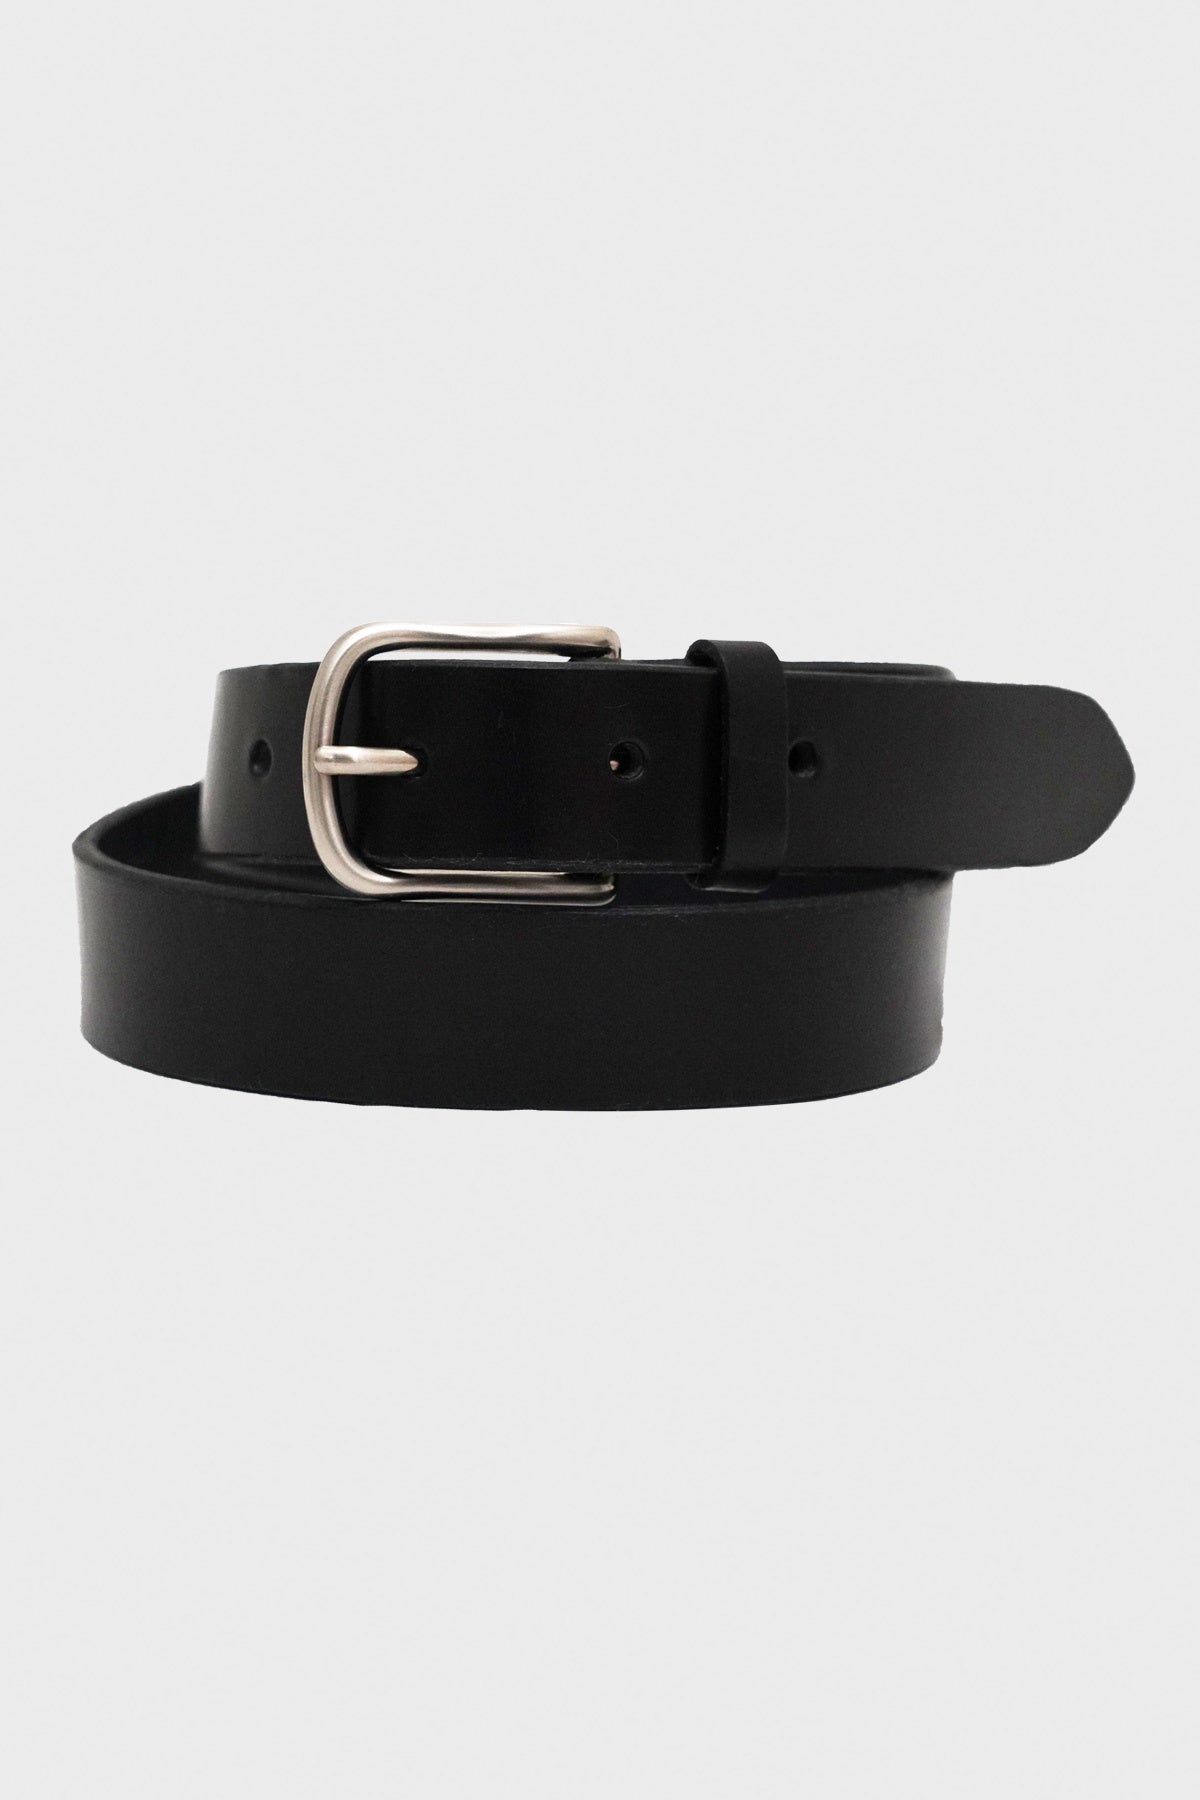 laperruque Belt - Black Leather and Nickel Buckle